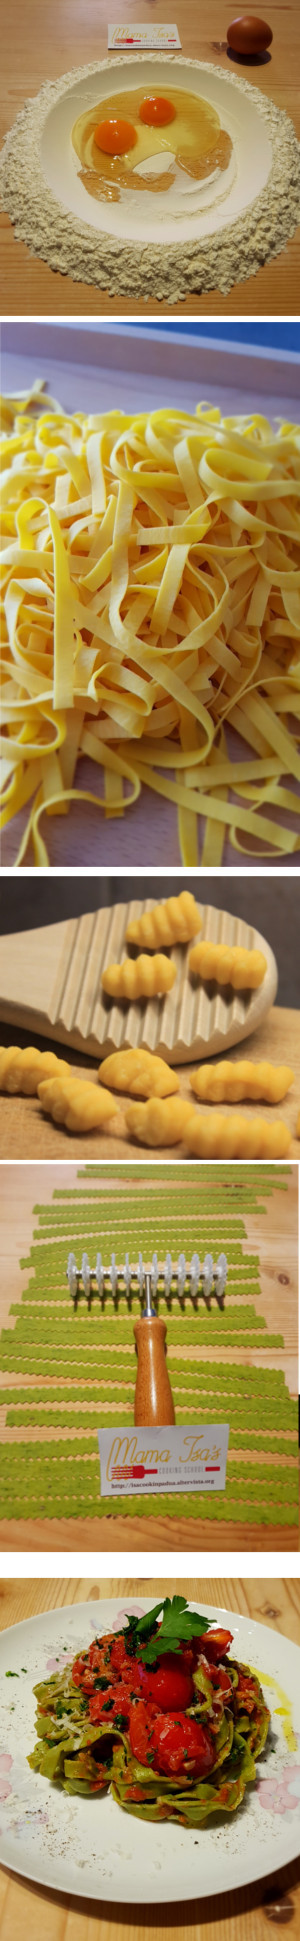 The Art of Making Pasta in Italy